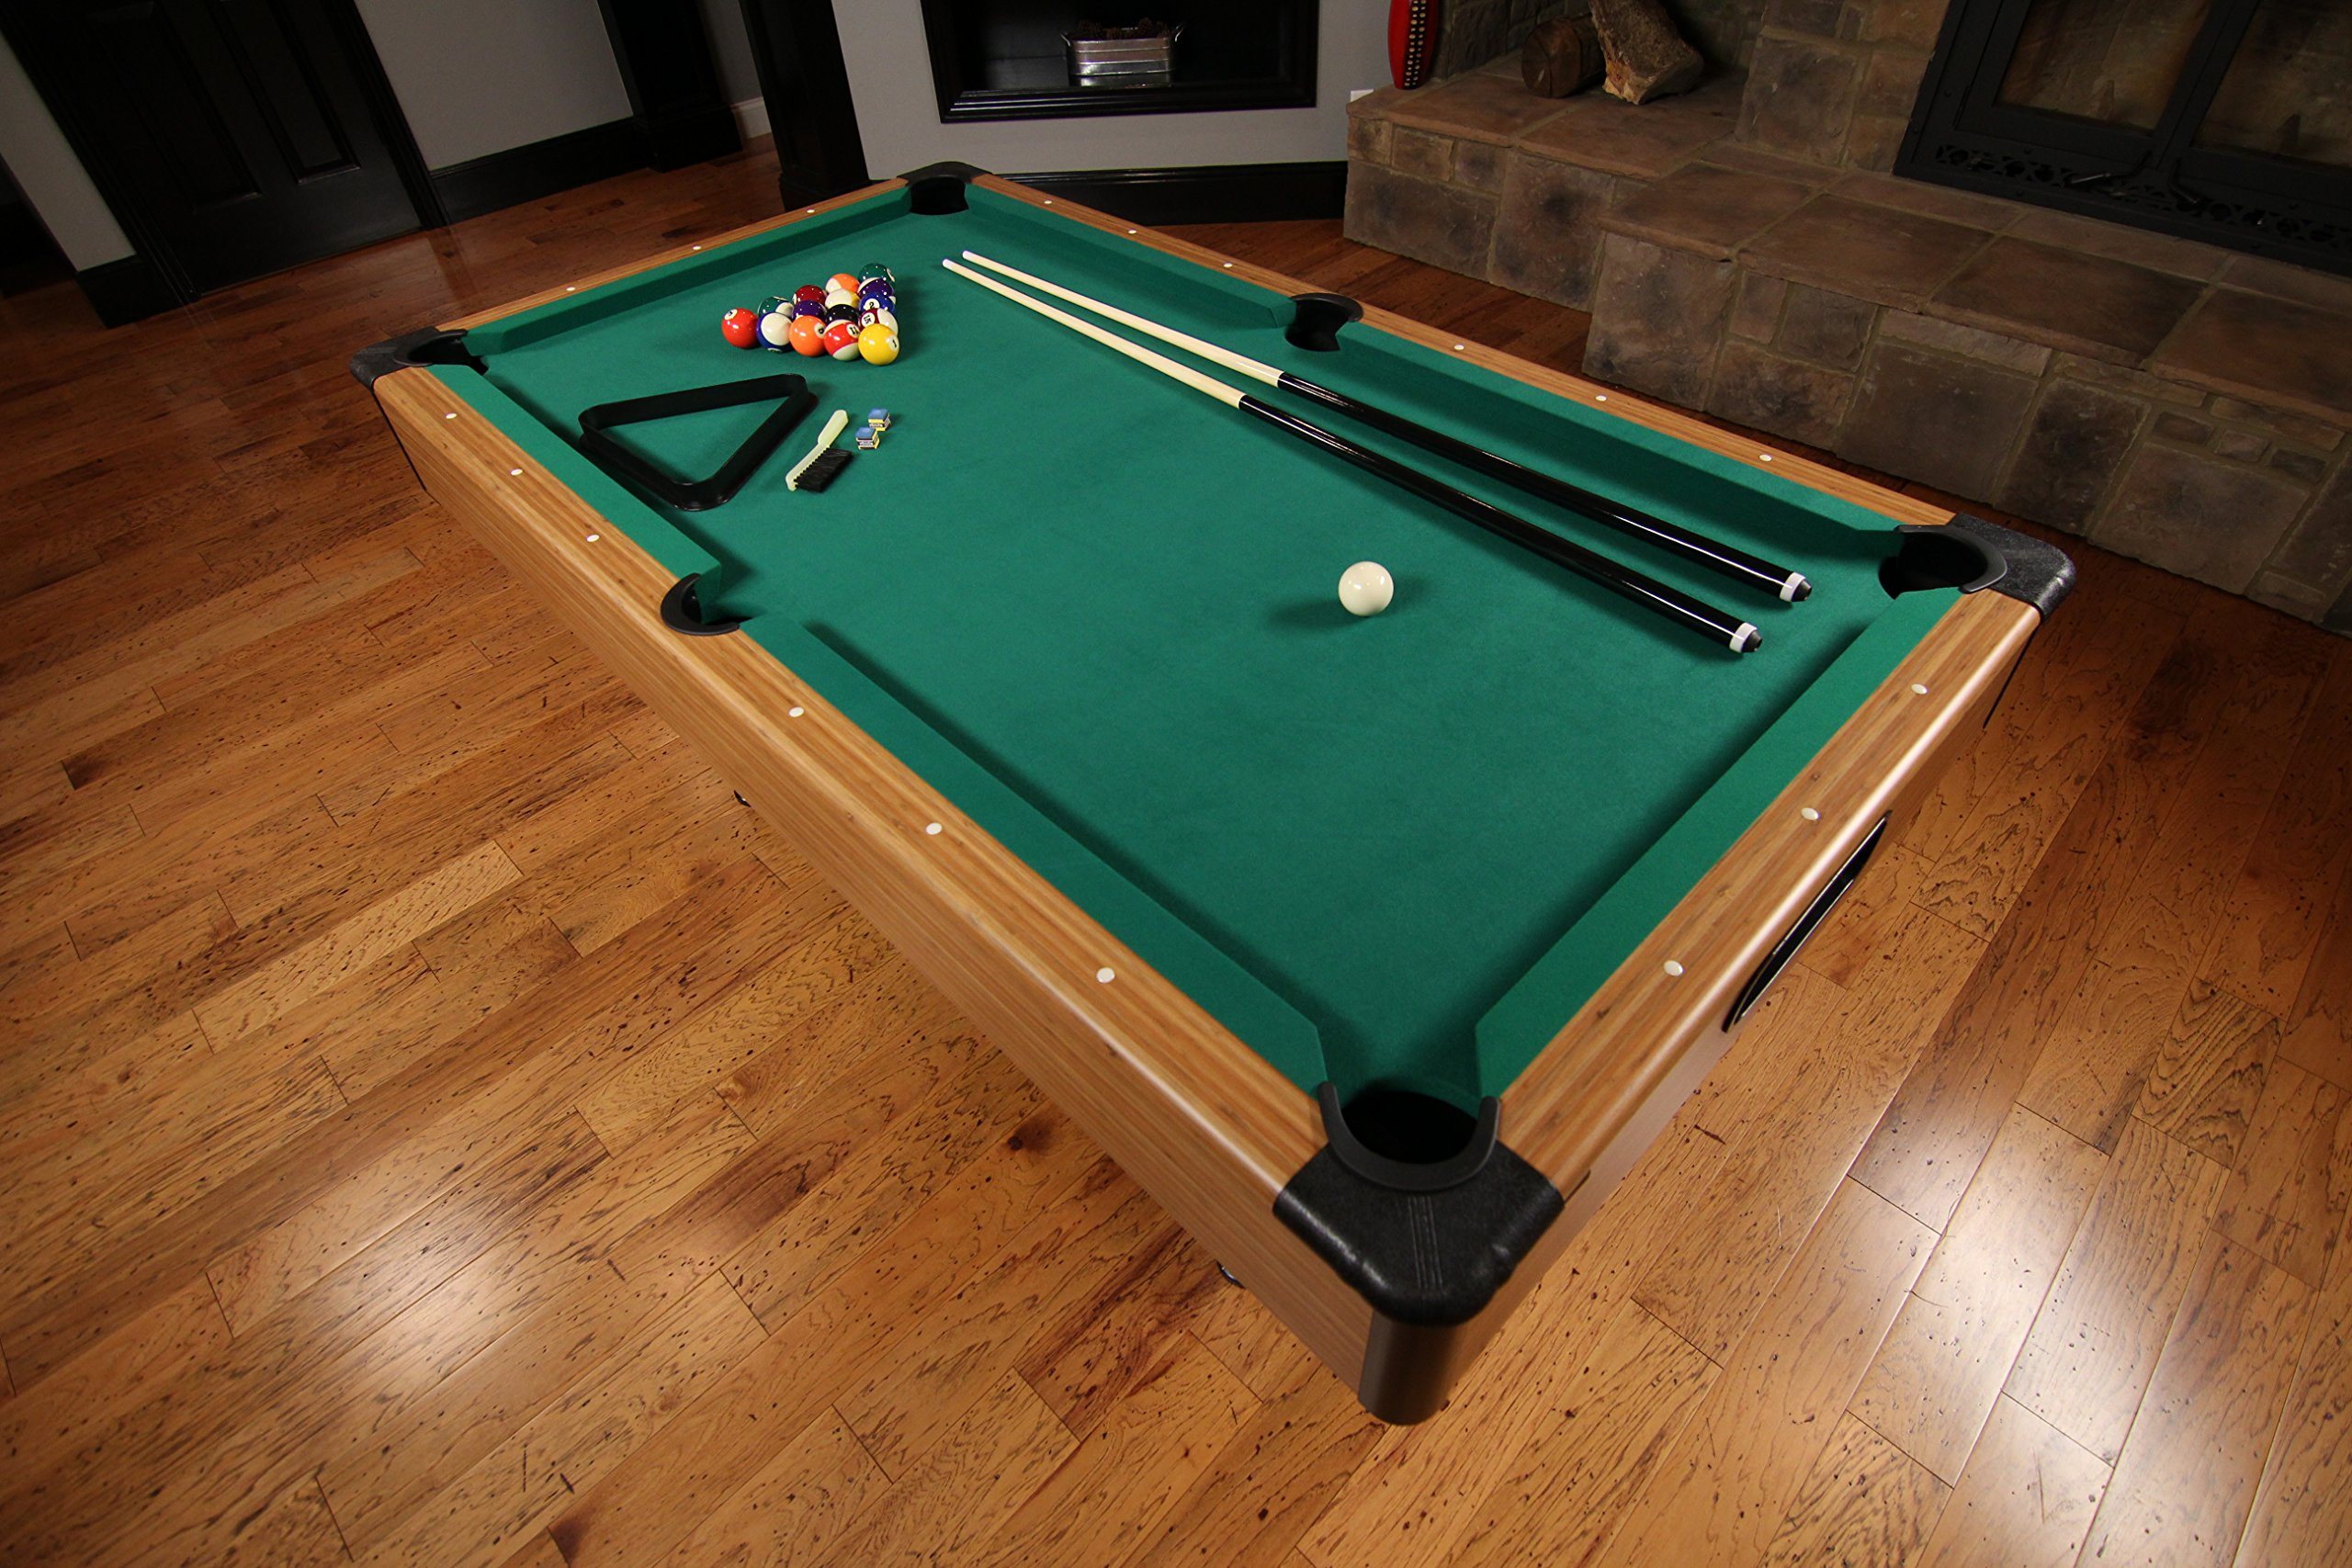 Mizerak Dynasty Space Saver 6.5' Billiard Table with Compact Design to Fit in Smaller Rooms, Leg Levelers for Perfectly Even Playing Surface, Double-sealed MDF Play-bed for Consistent Roll and Automatic Ball Return for Quick Game Reset by Mizerak (Image #19)